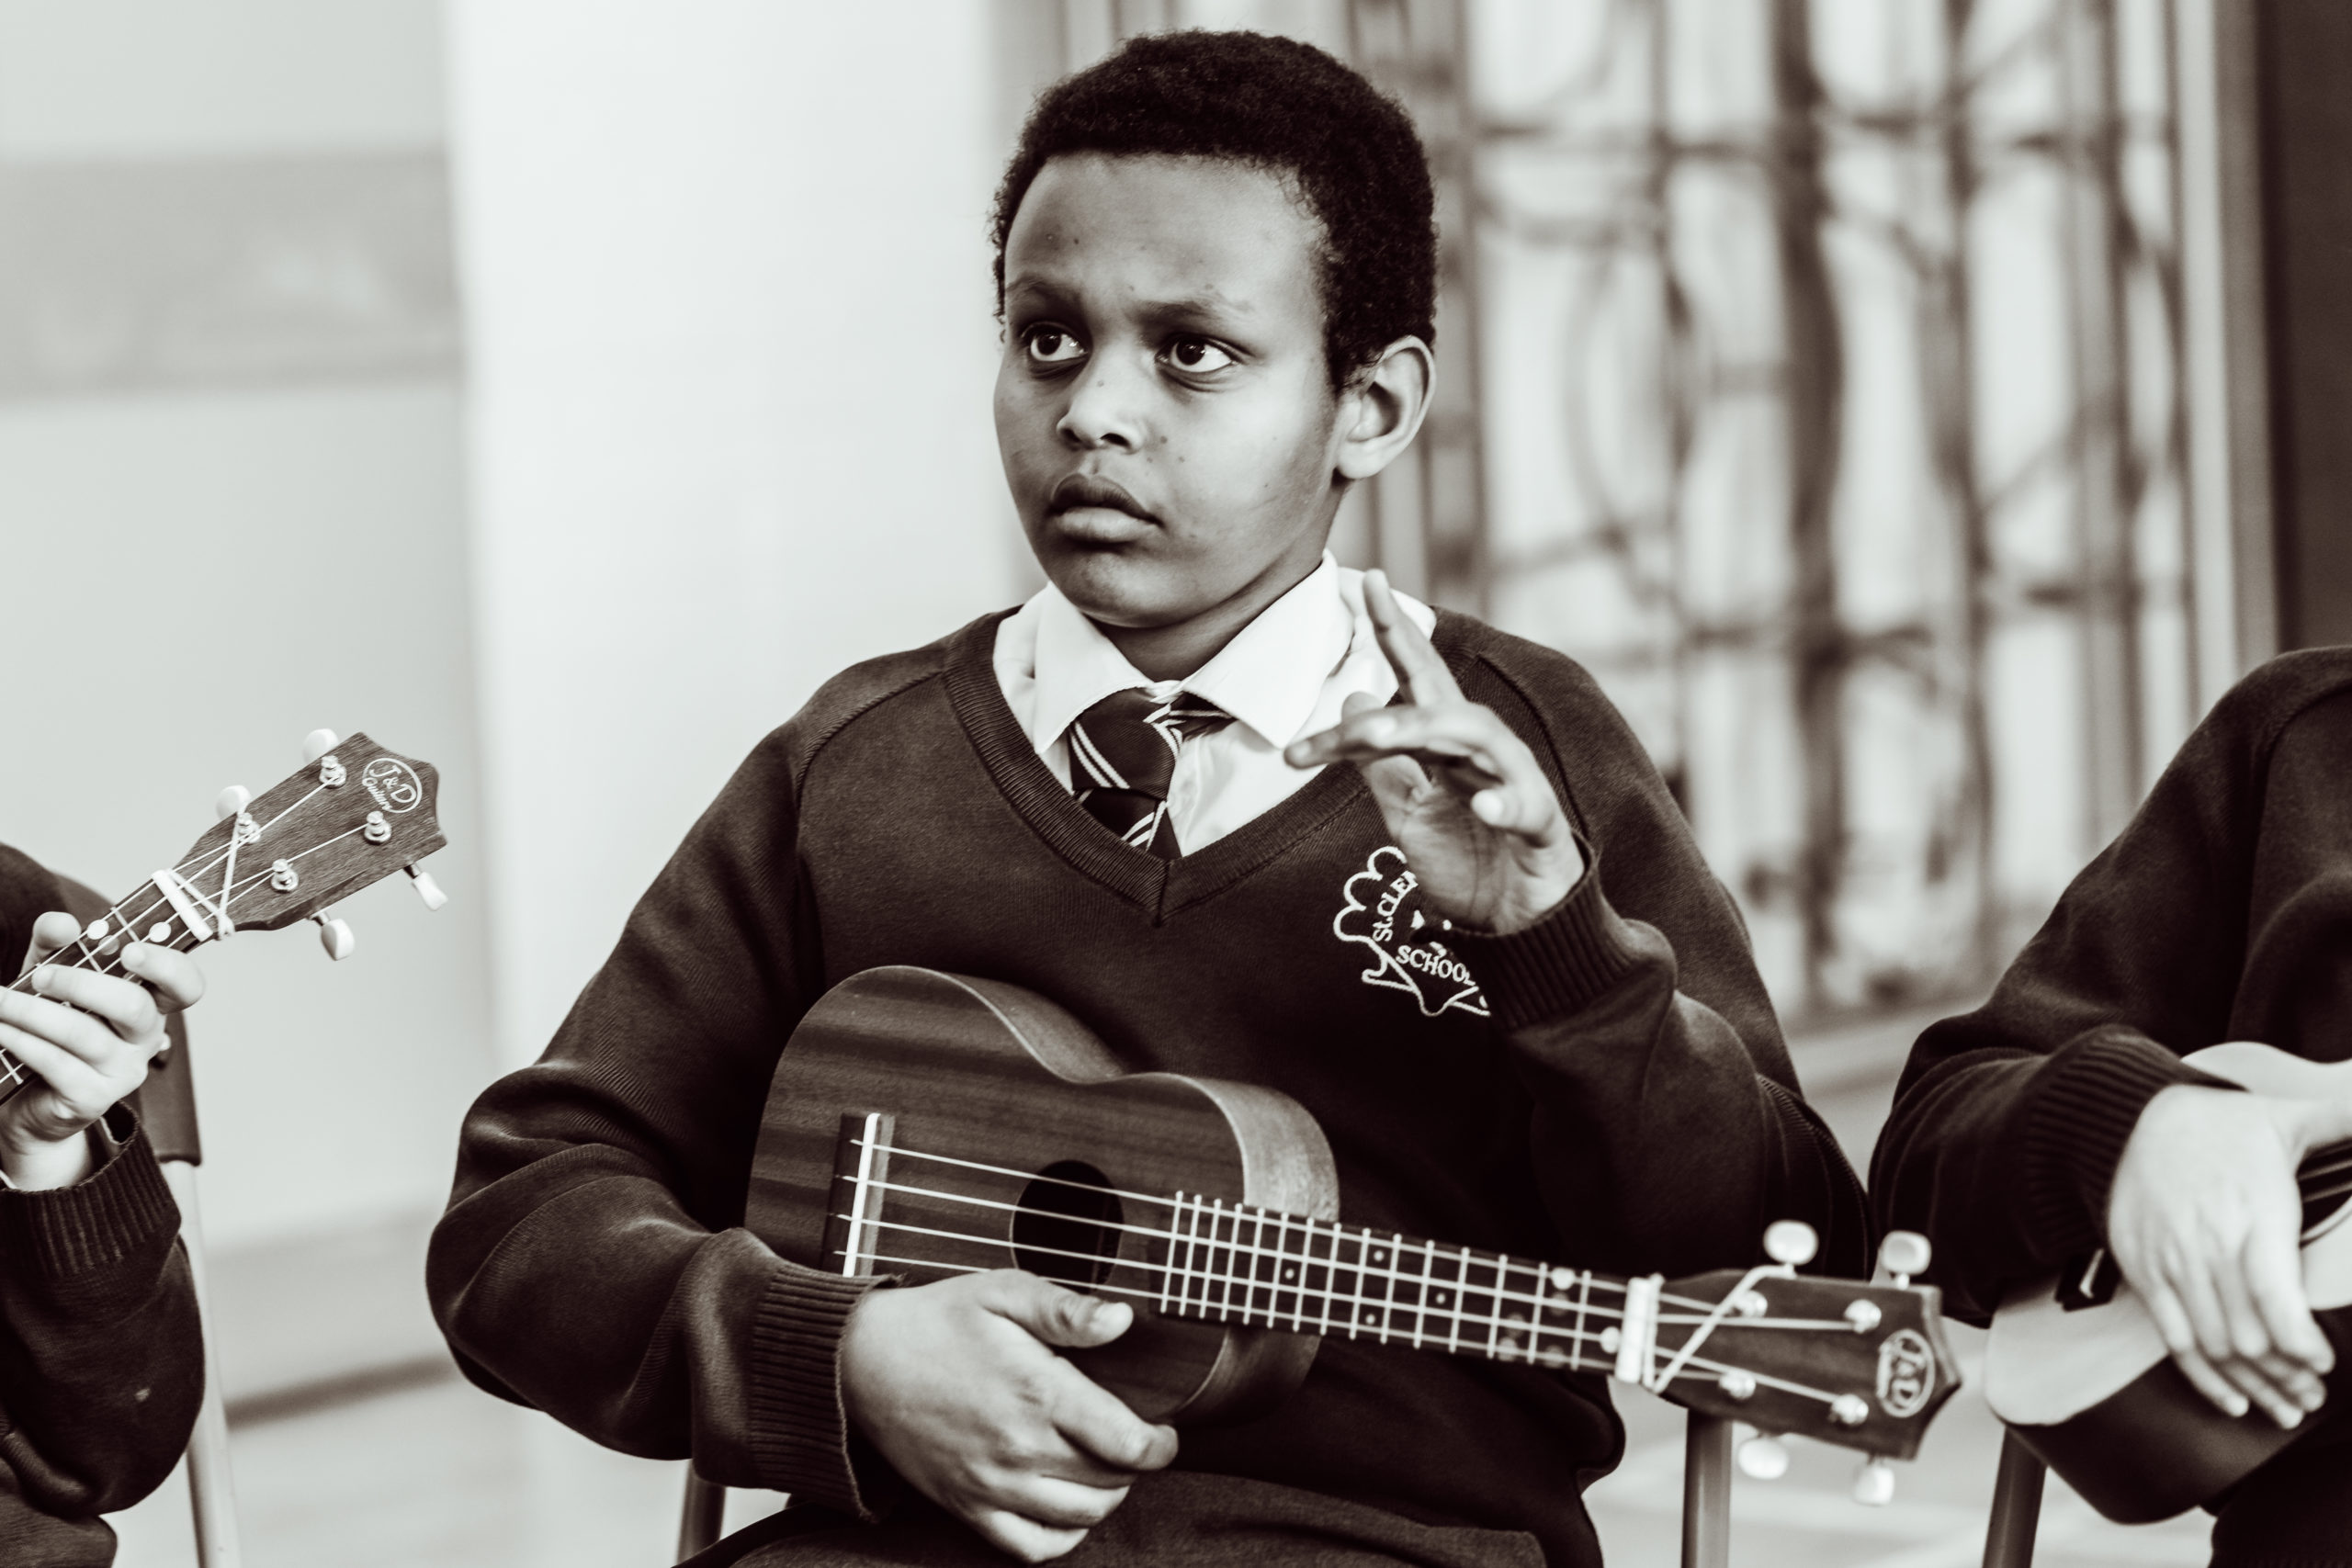 Close up- black and white, KS2 primary pupil, holding ukulele in one hand, holding his other hand up in air